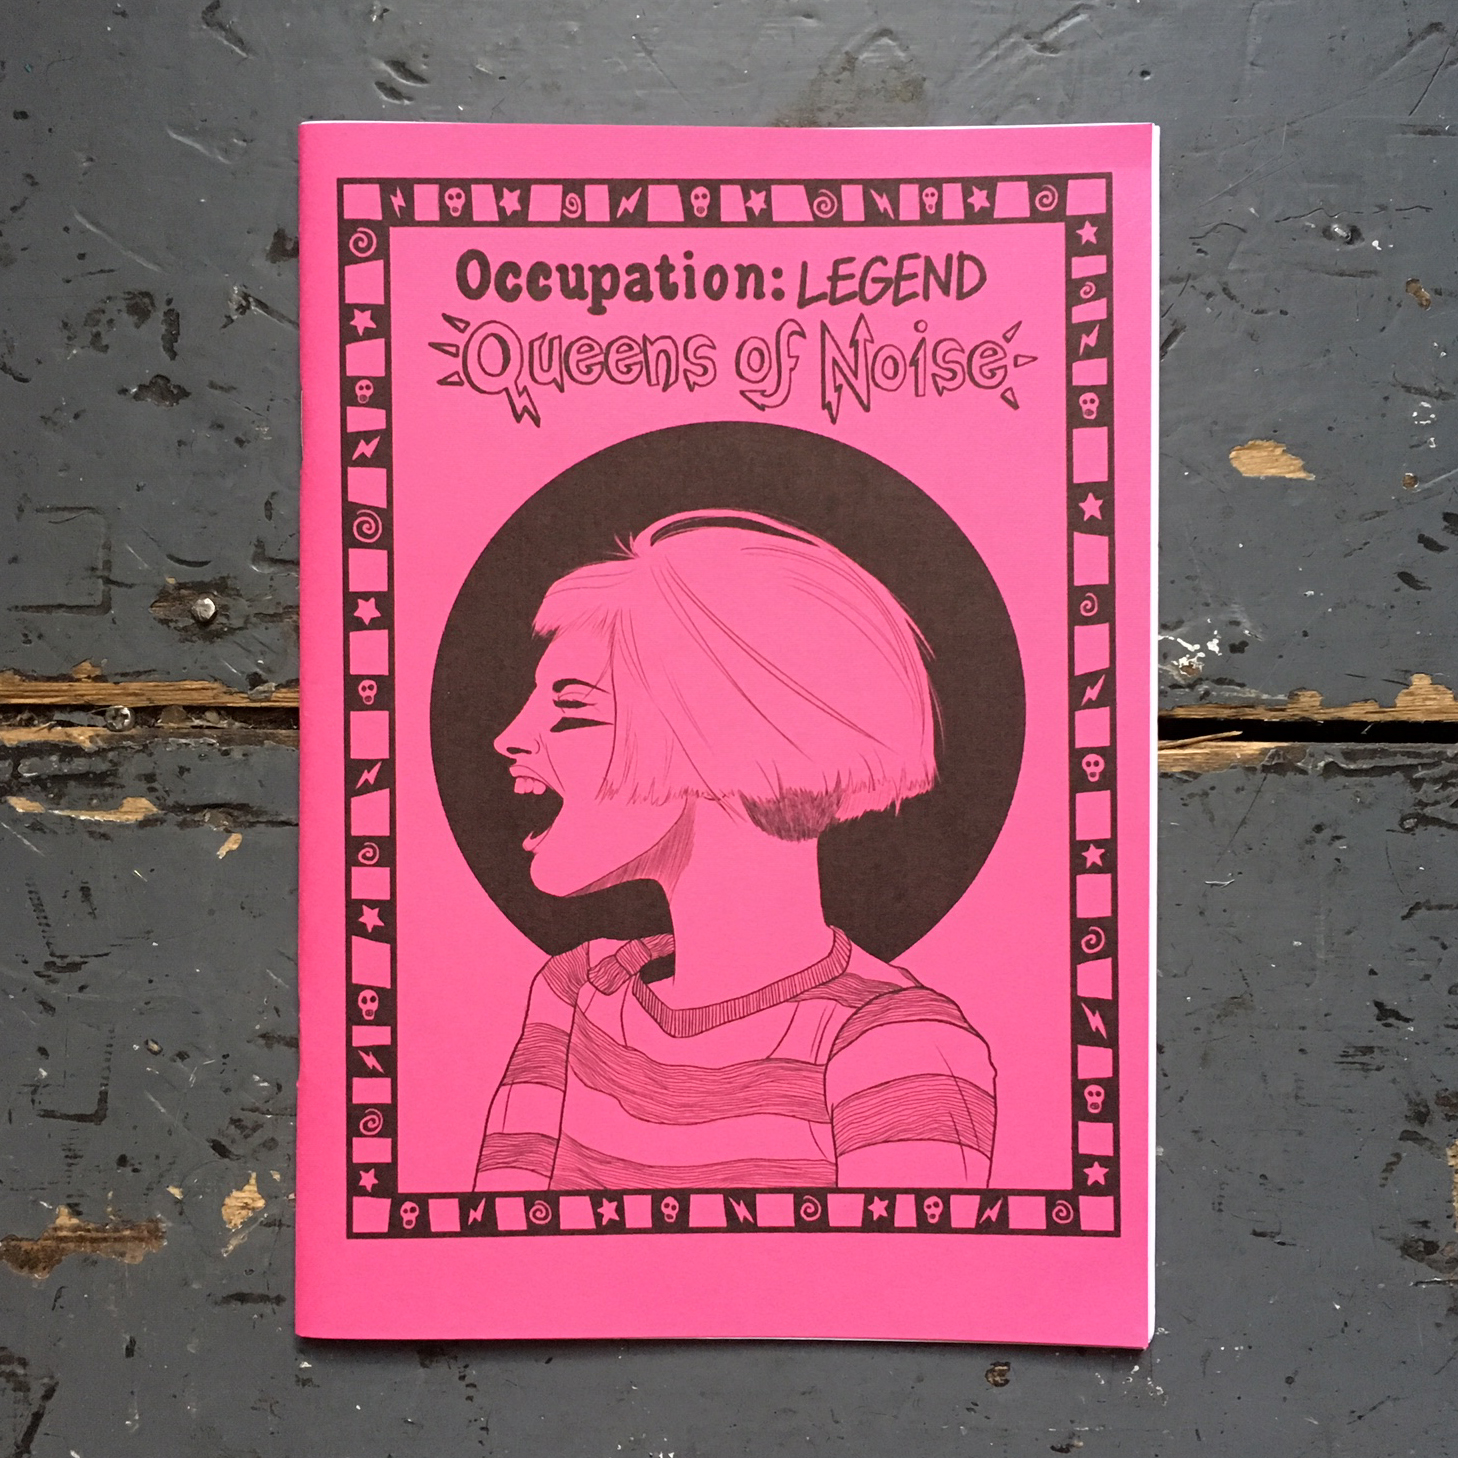 Occupation: Legend - Queens of Noise